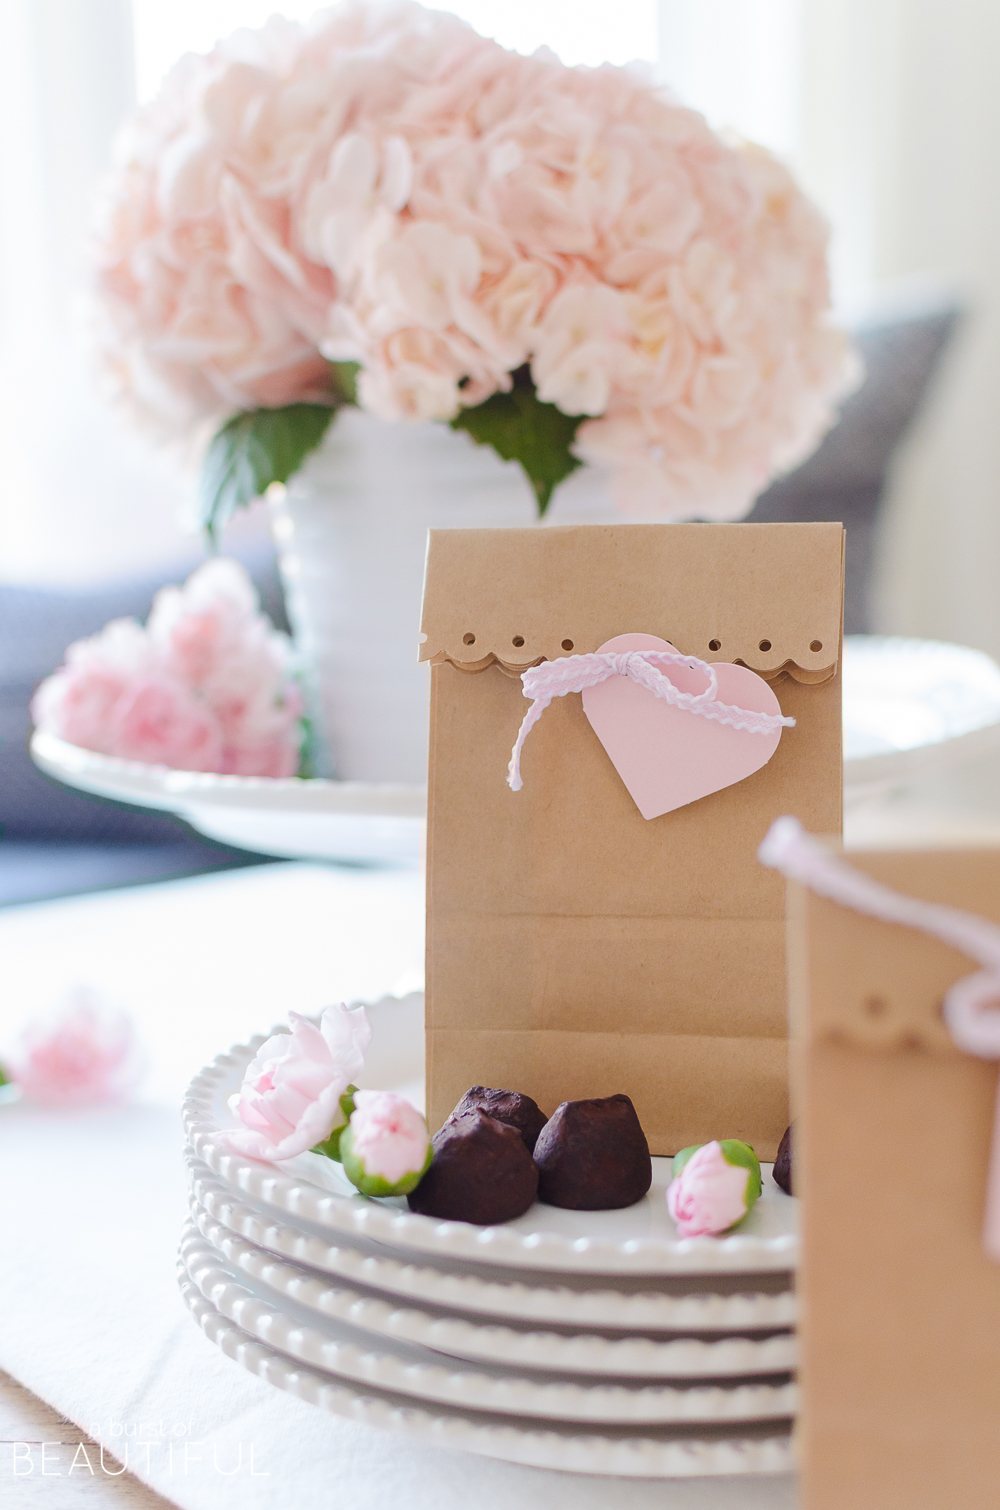 These homemade Valentine's Day Party Favors are easy to make and will brighten anyone's day!